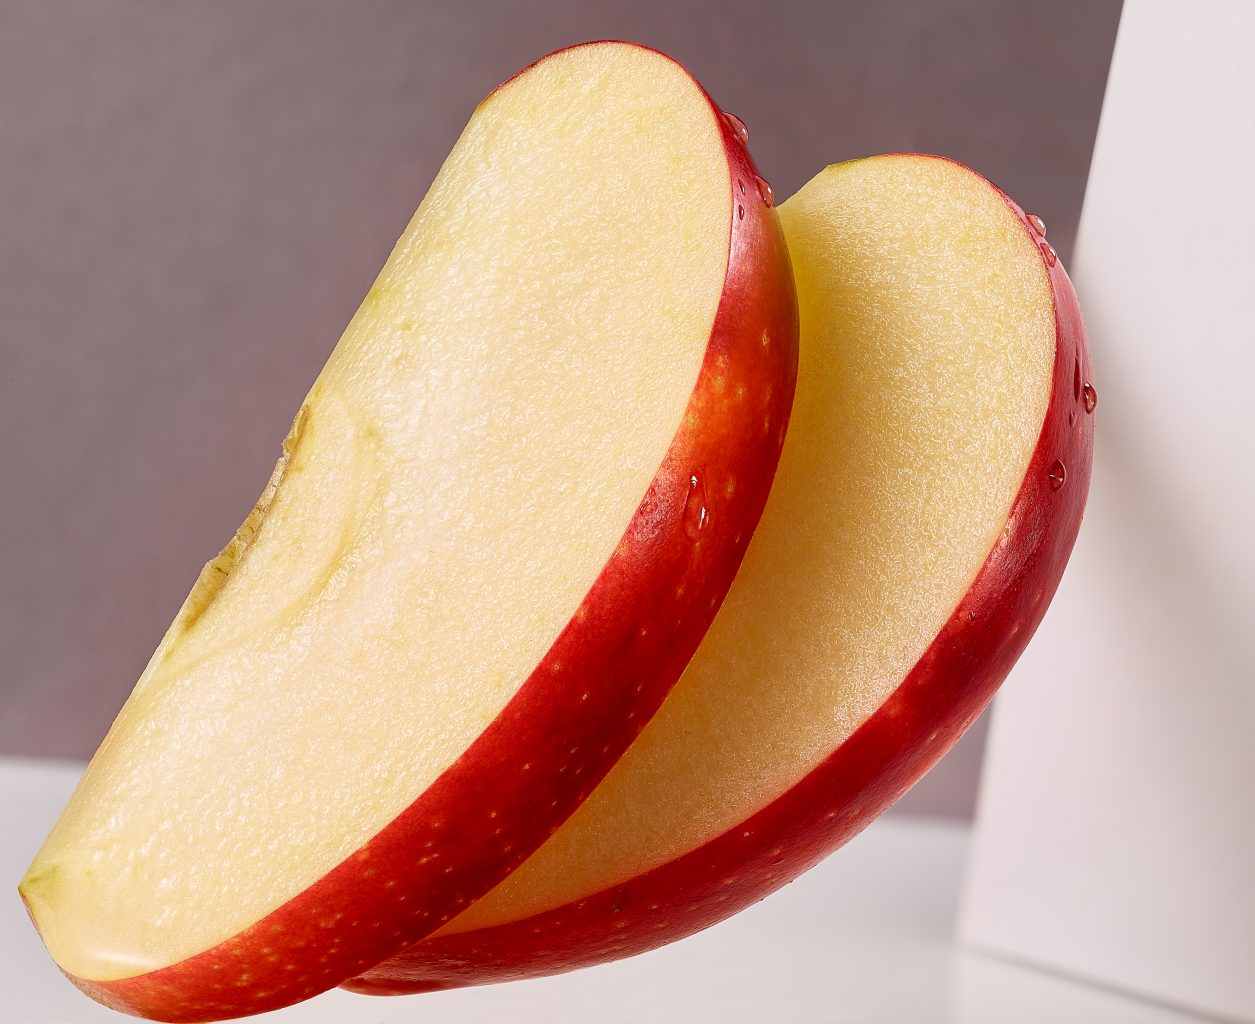 pack shots of apple slices for Müller Milch Packaging